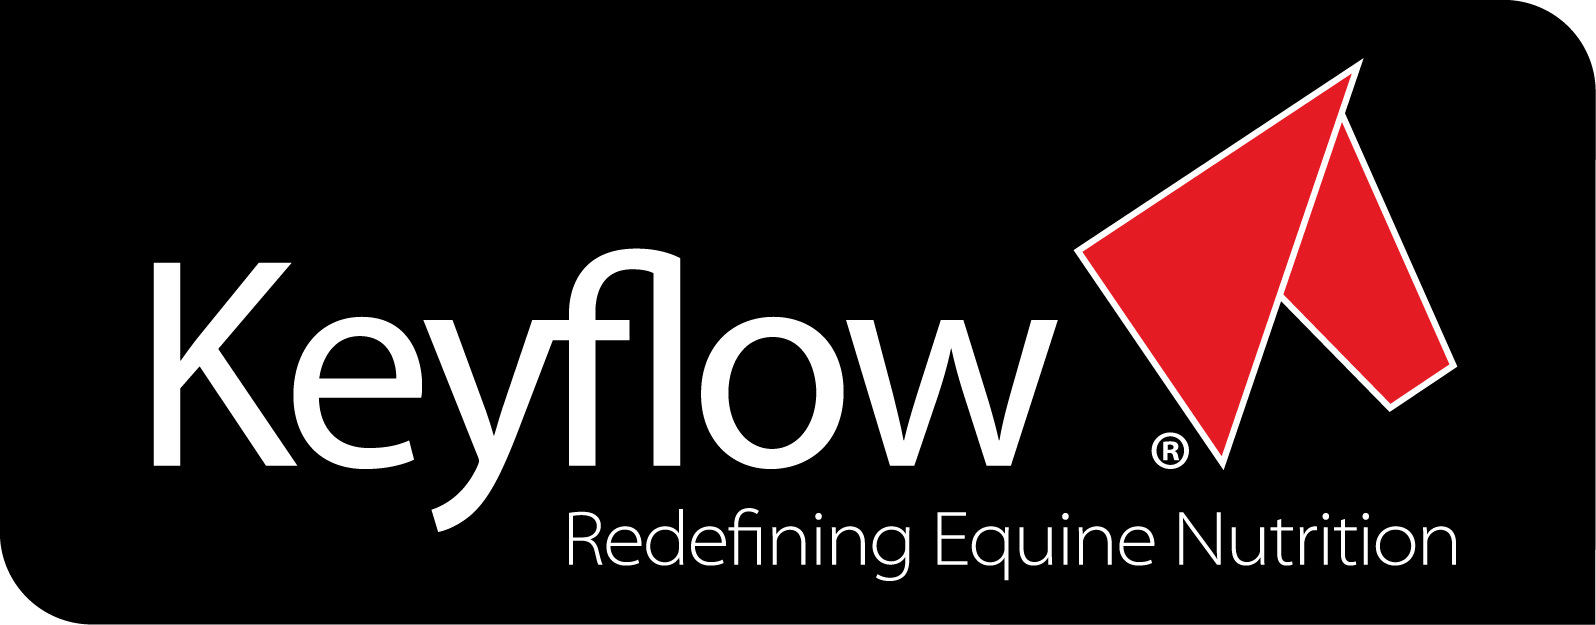 Keyflow Feeds